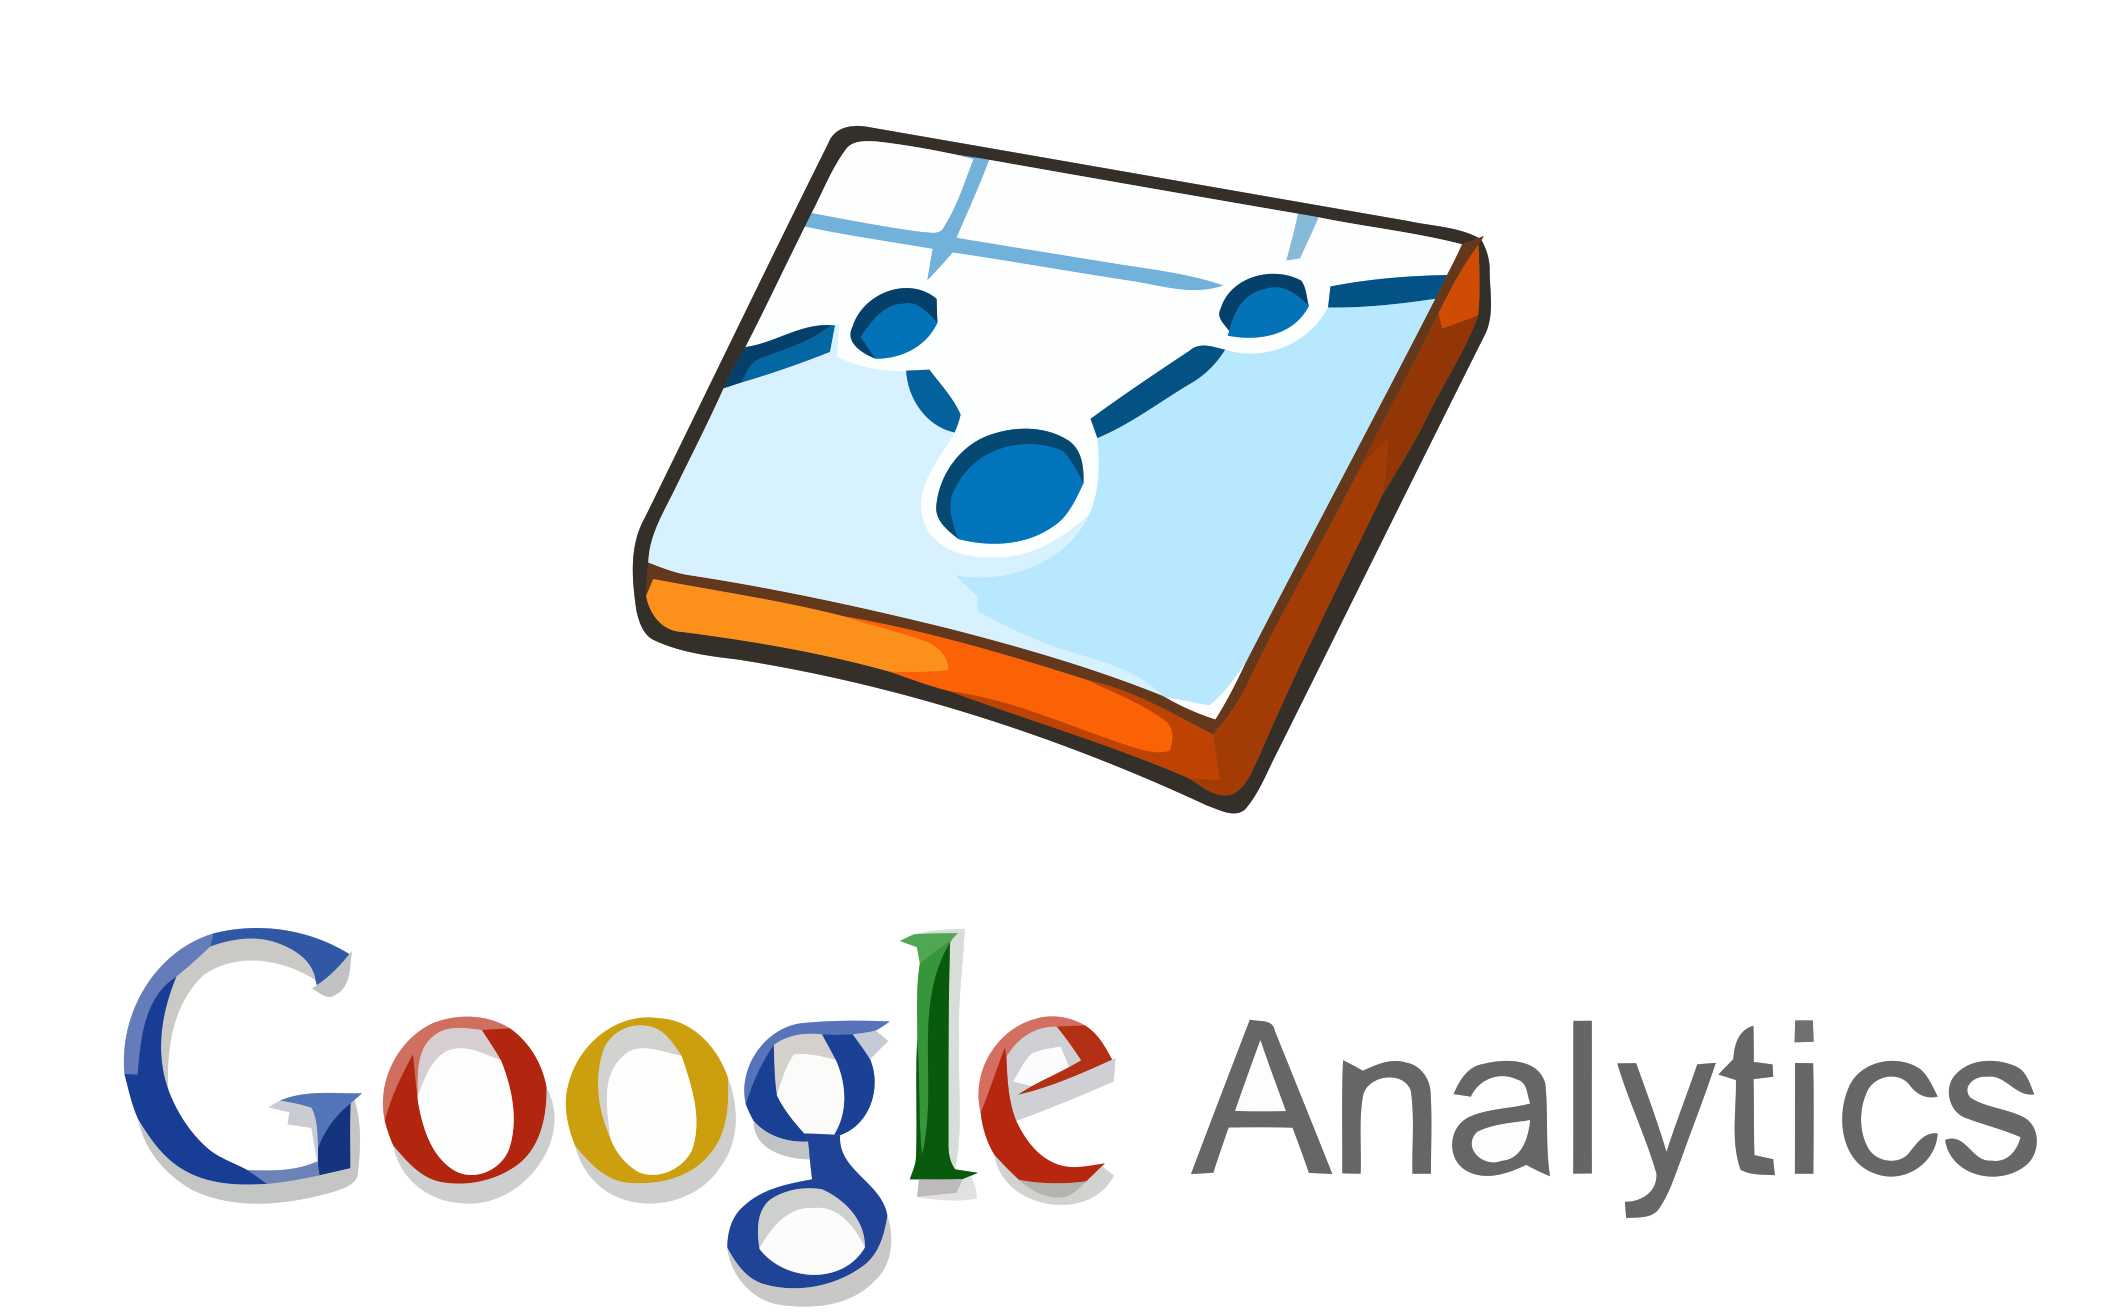 Delete-domain-in-Google-Analytics-howto-remove-analytics-website-Google-Analytics_logo